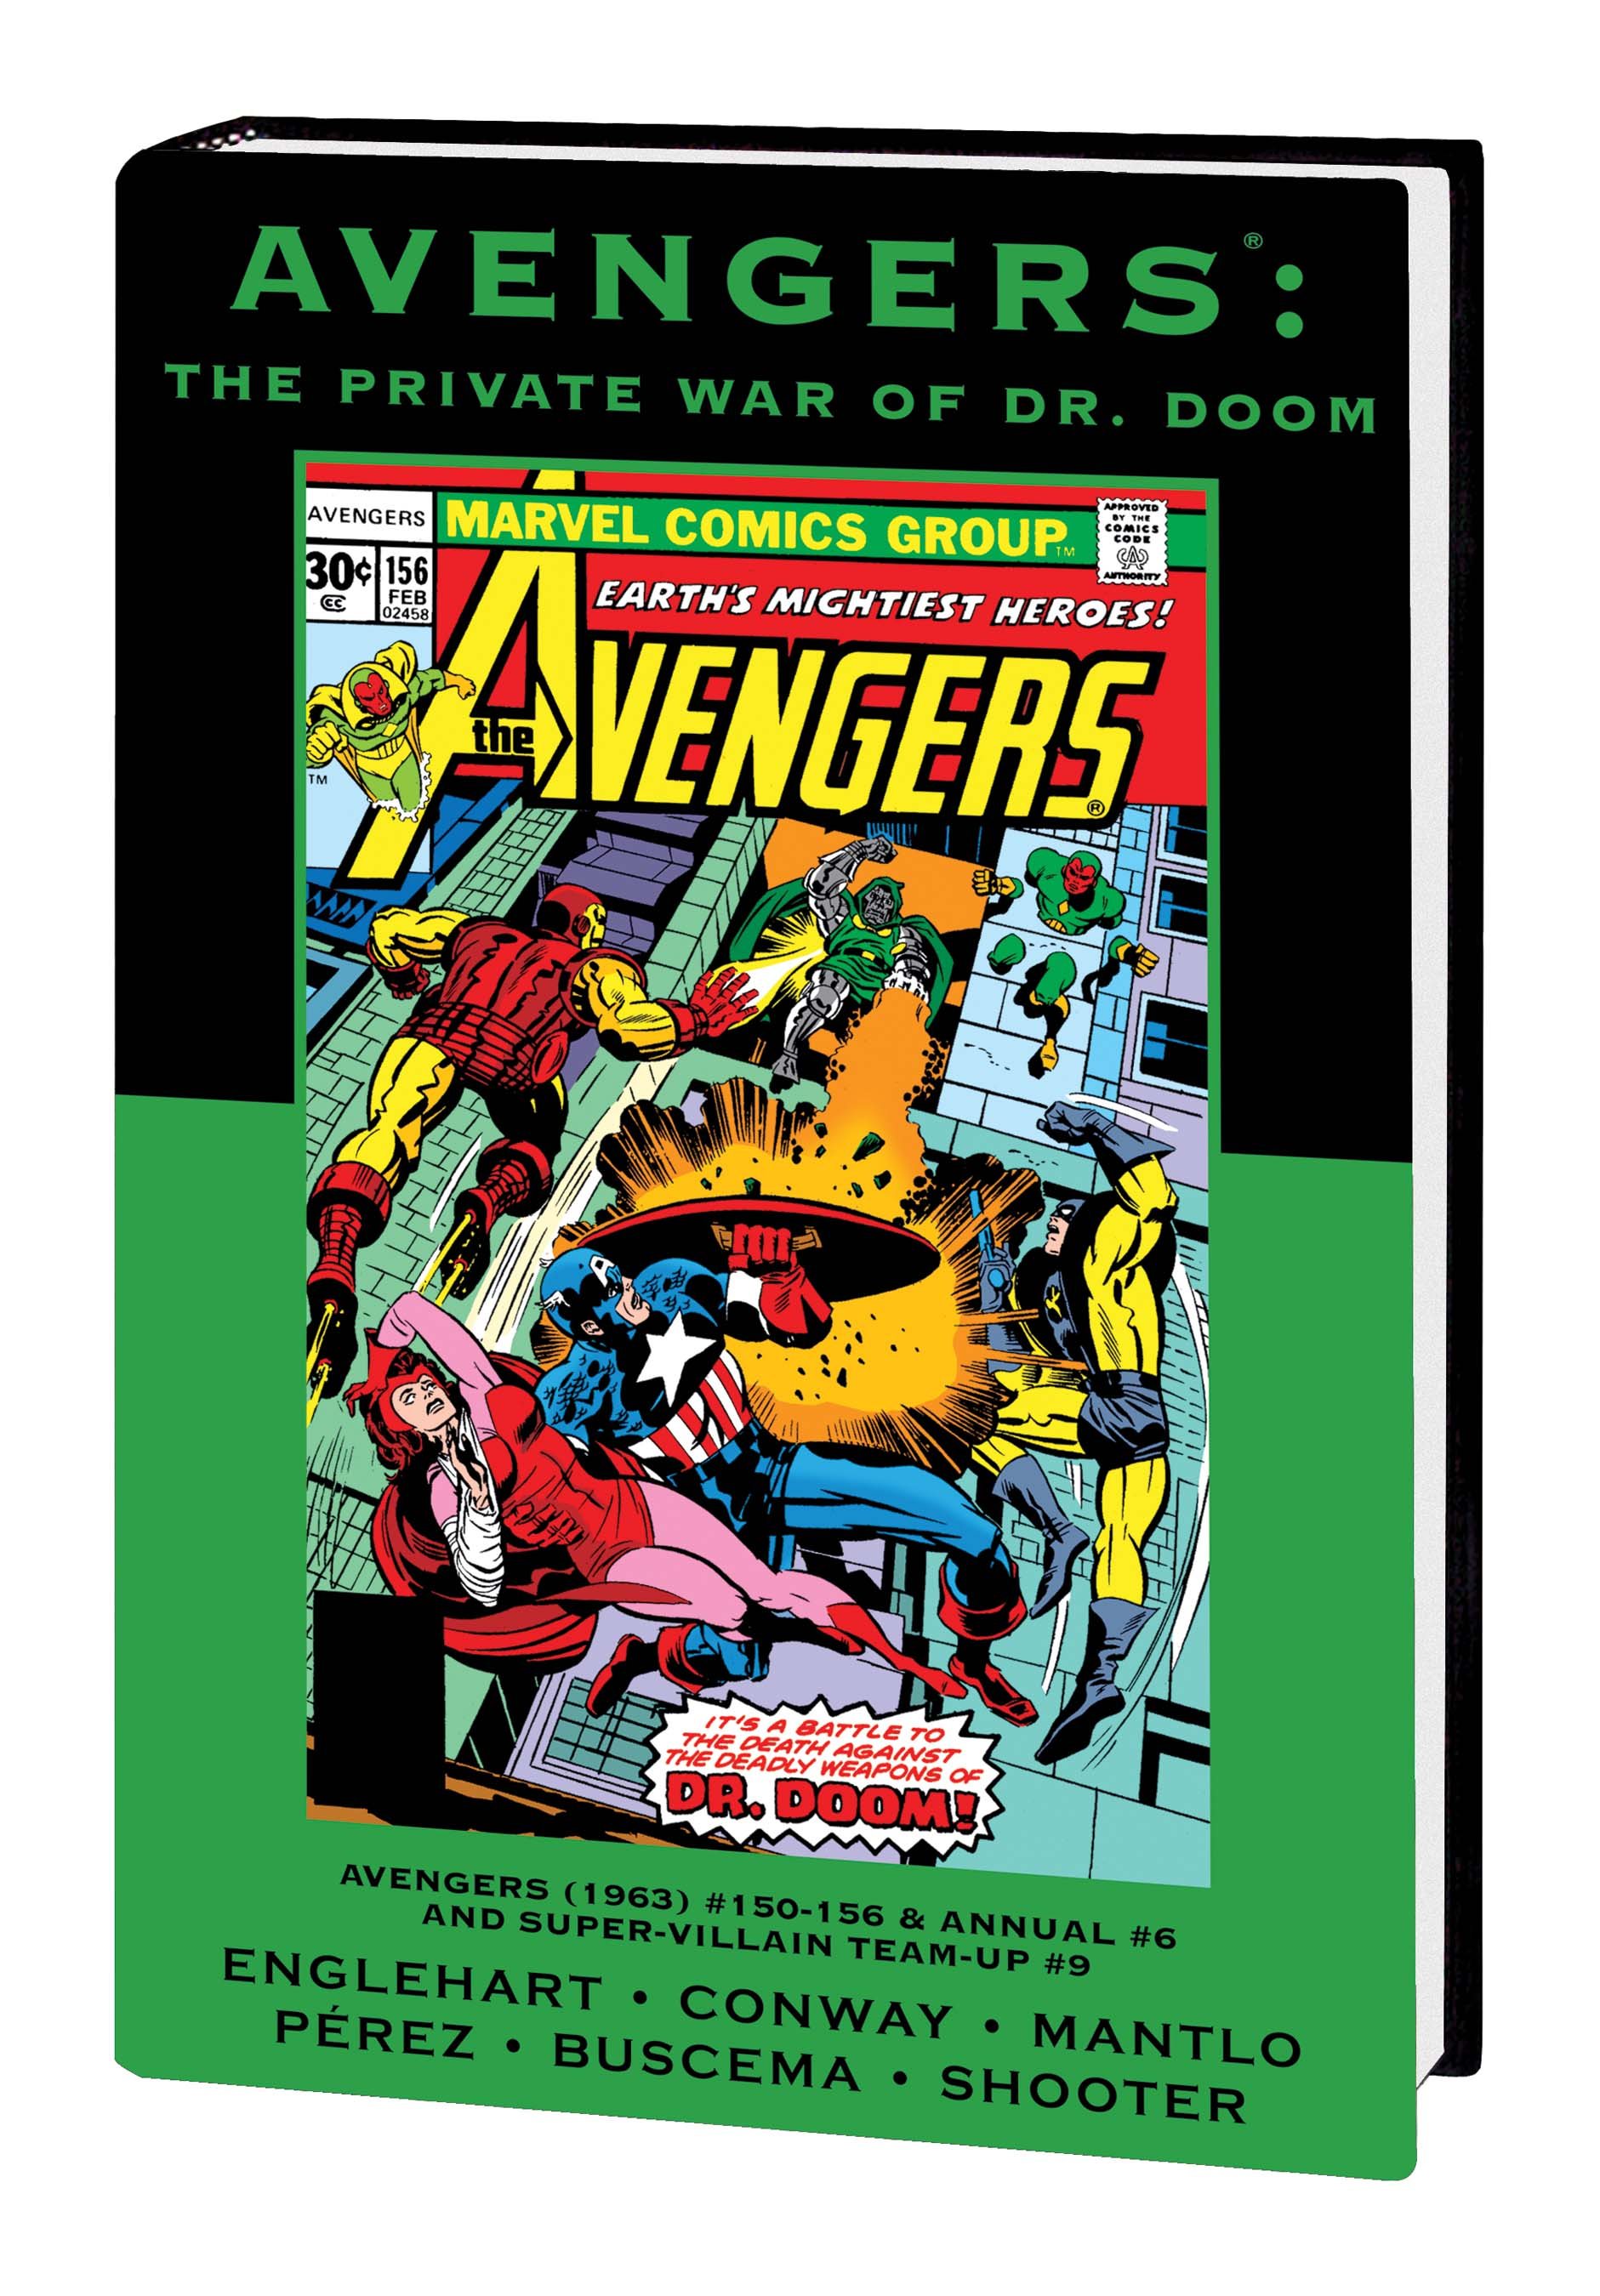 AVENGERS: THE PRIVATE WAR OF DR. DOOM PREMIERE HC - VARIANT EDITION VOL. 89 (DM ONLY)